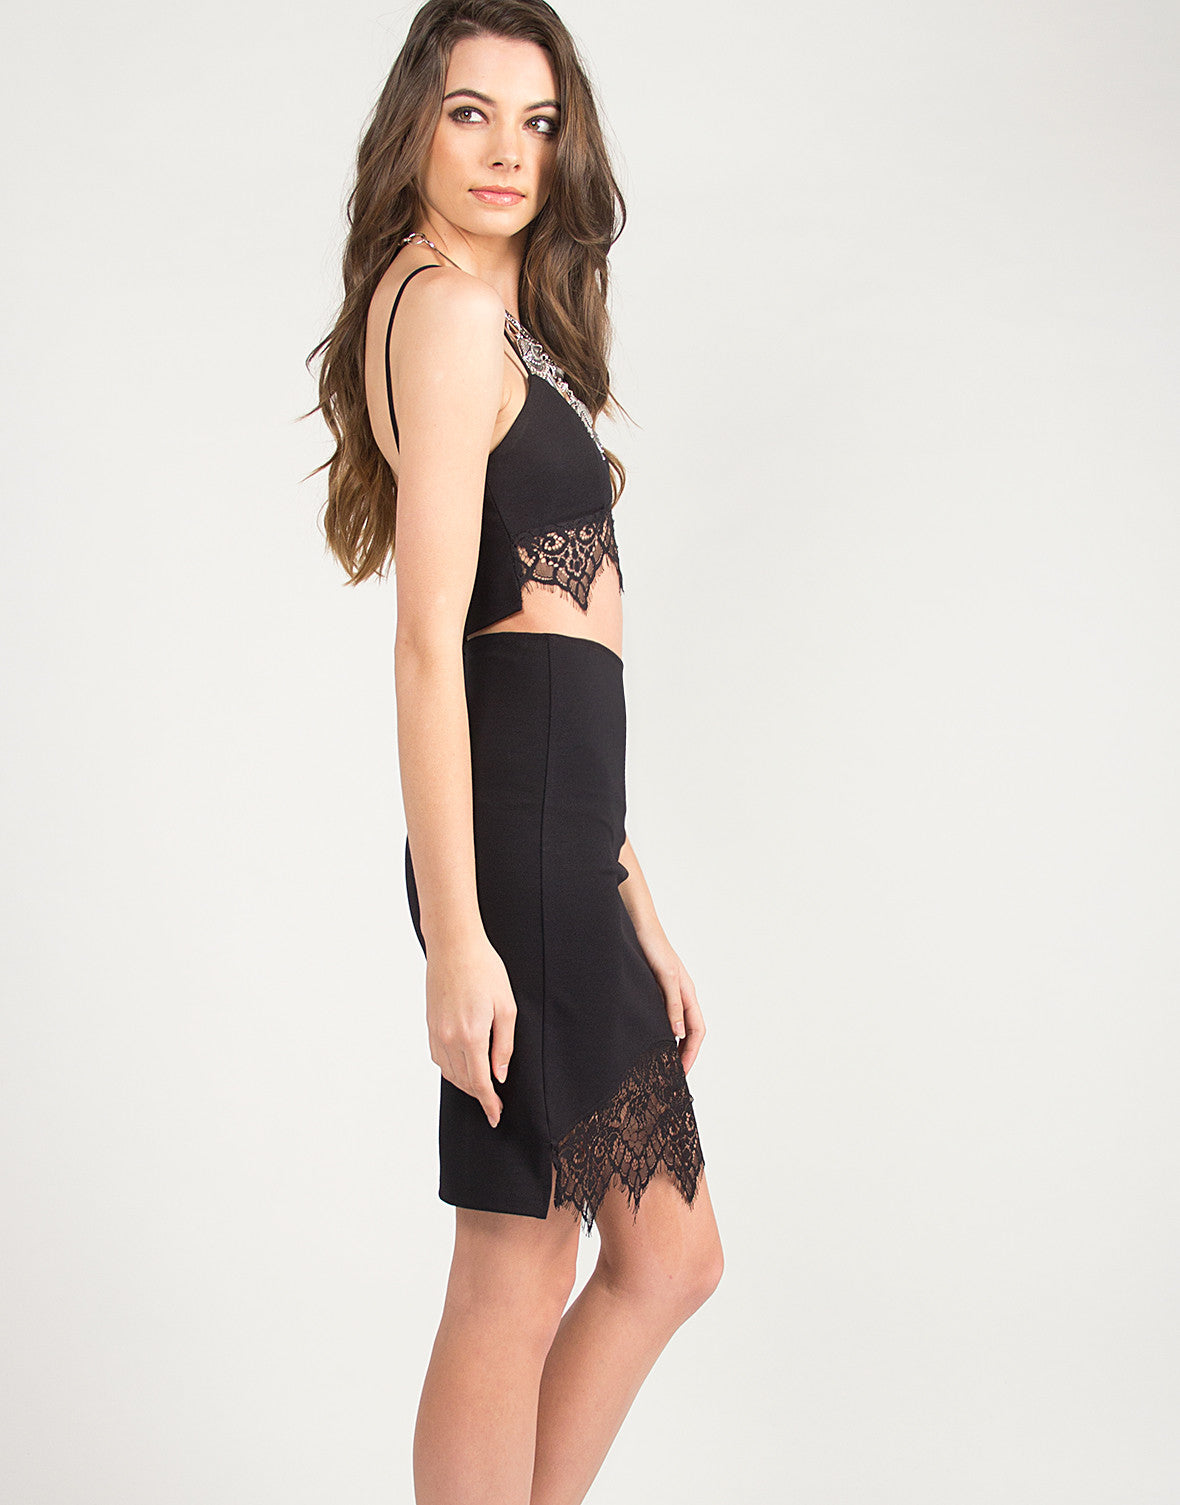 Lace Detail Bodycon Skirt - Black - Large